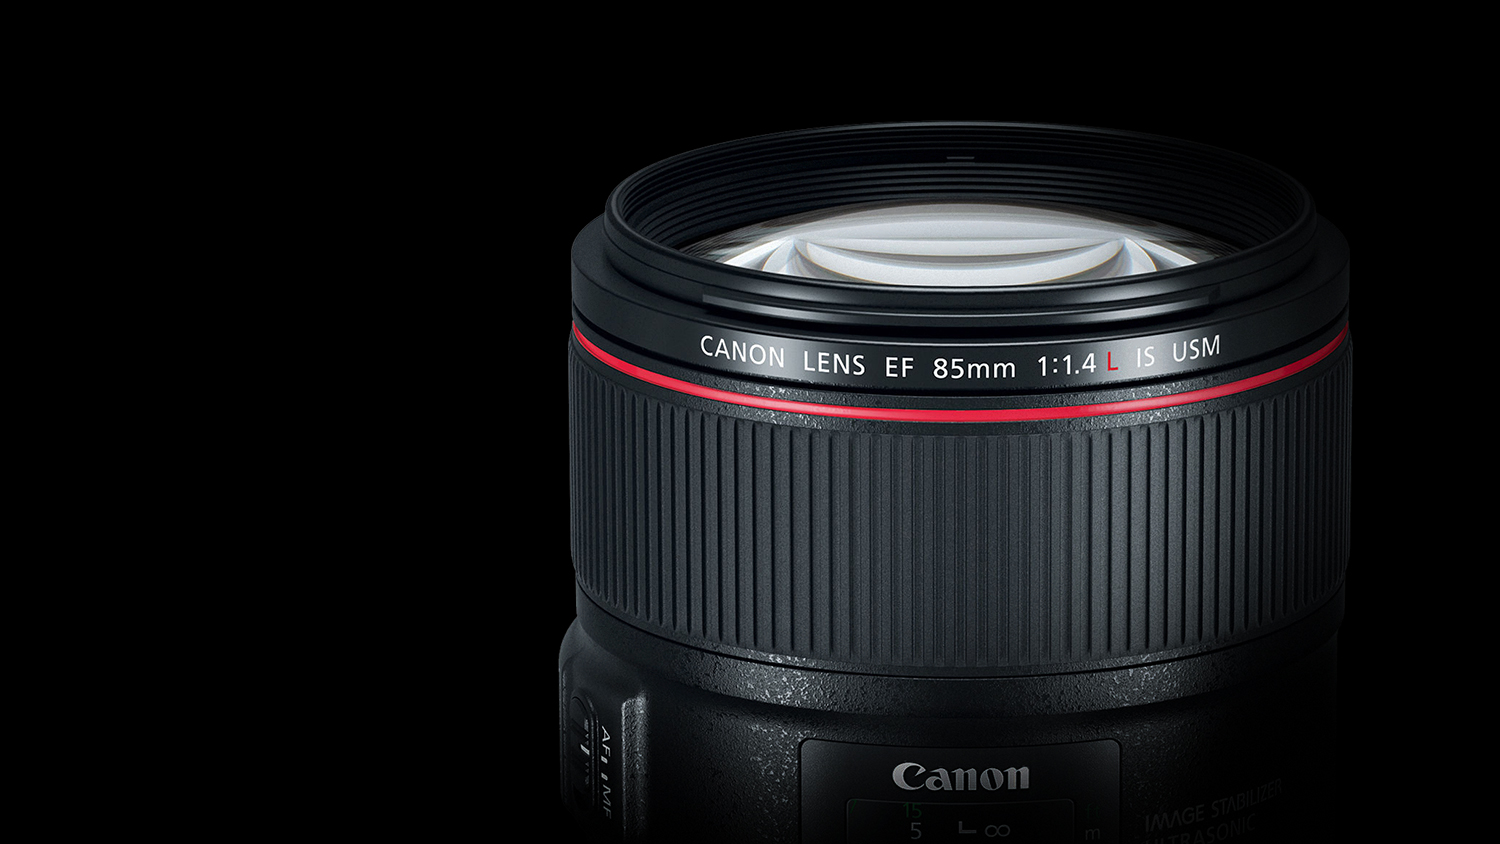 No new EF lenses from Canon until 2020?